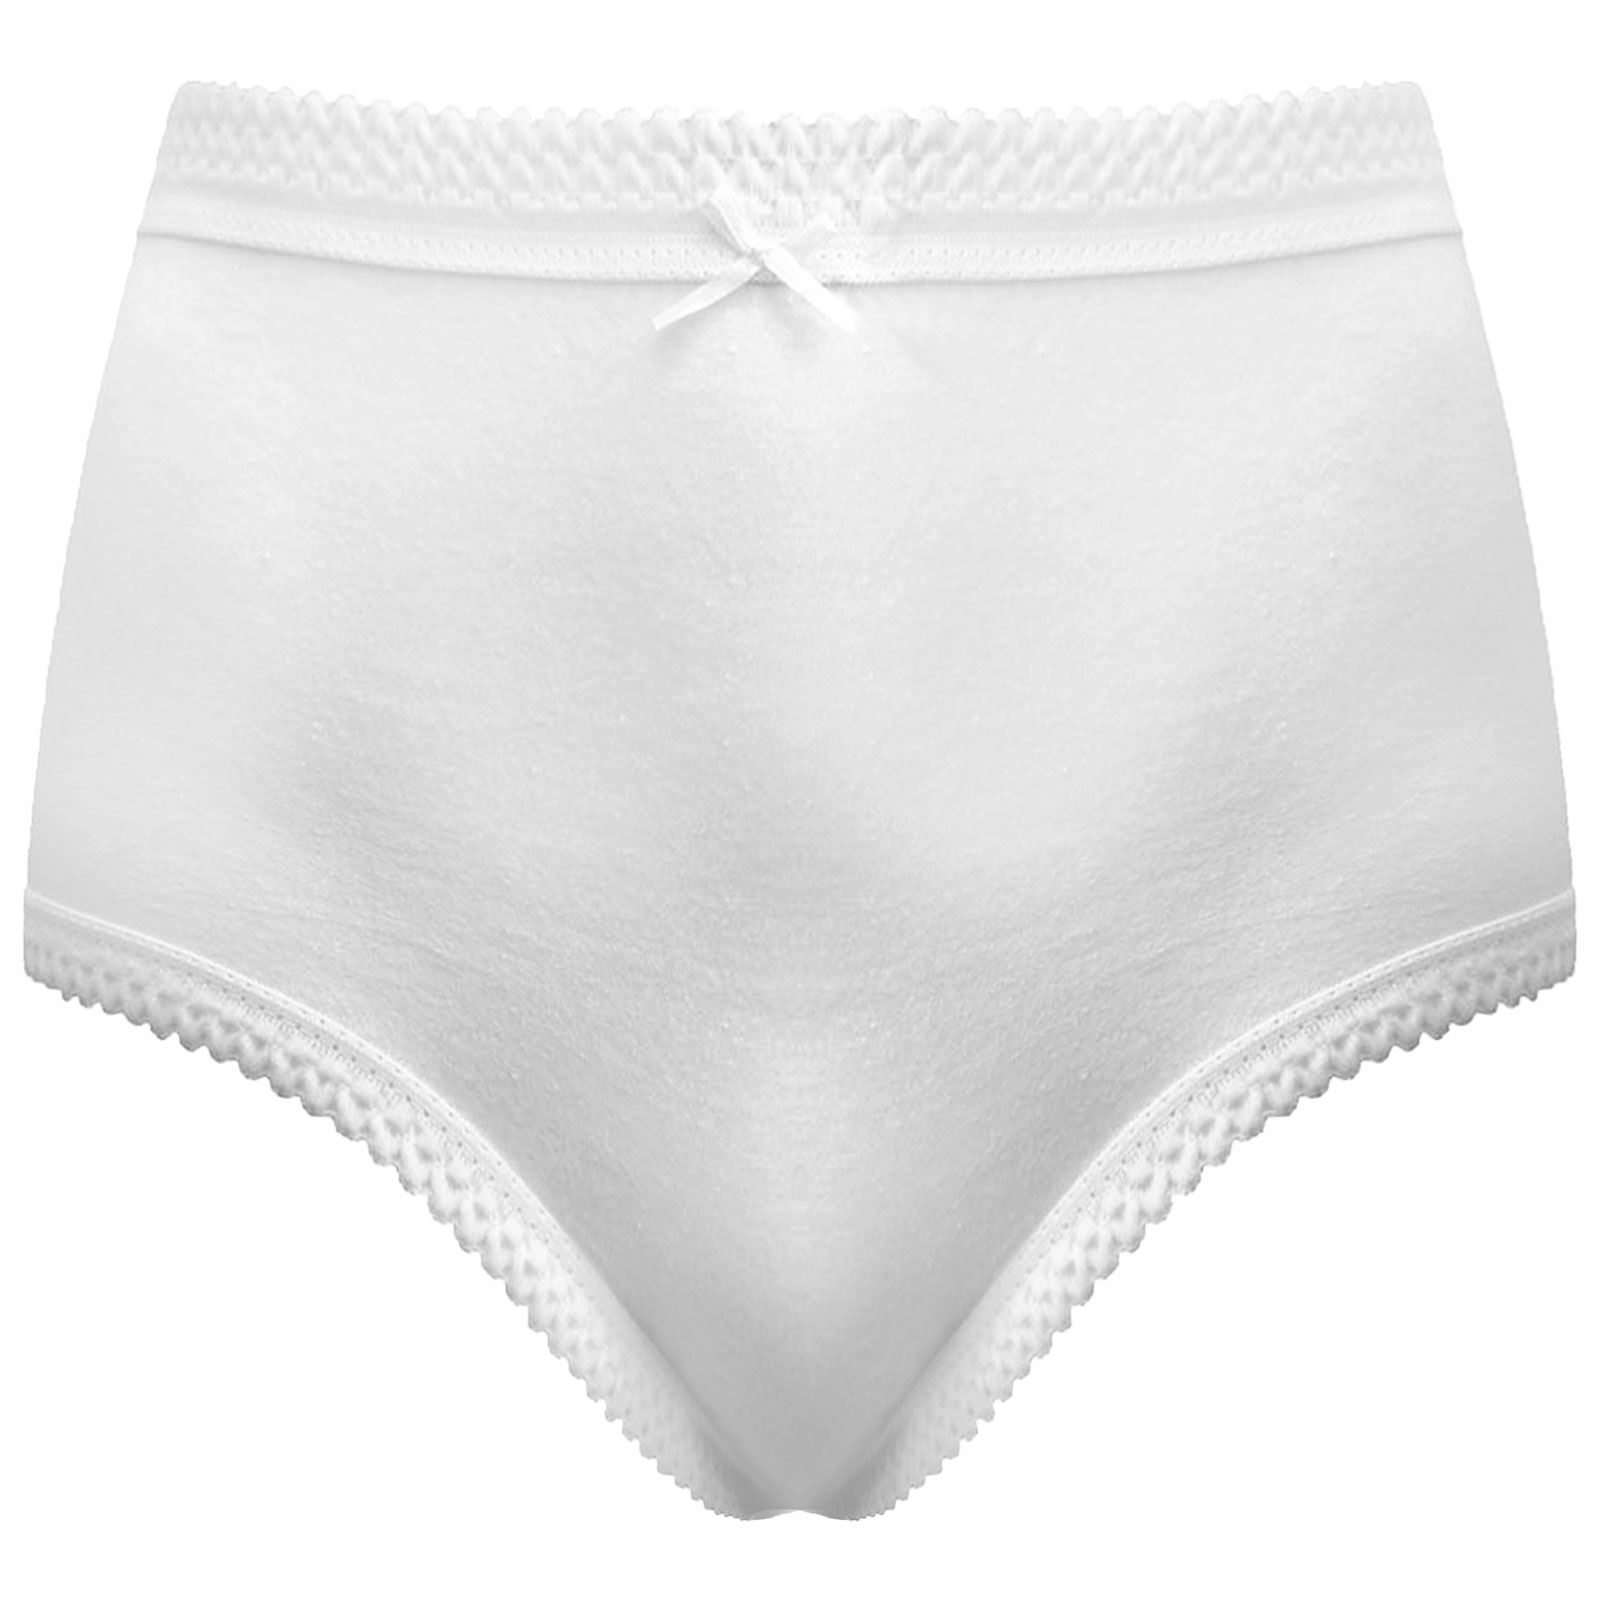 a79840804 WHITE LADIES WOMENS MAXI BRIEFS KNICKERS UNDERWEAR FULL MAMA PANTIES ...